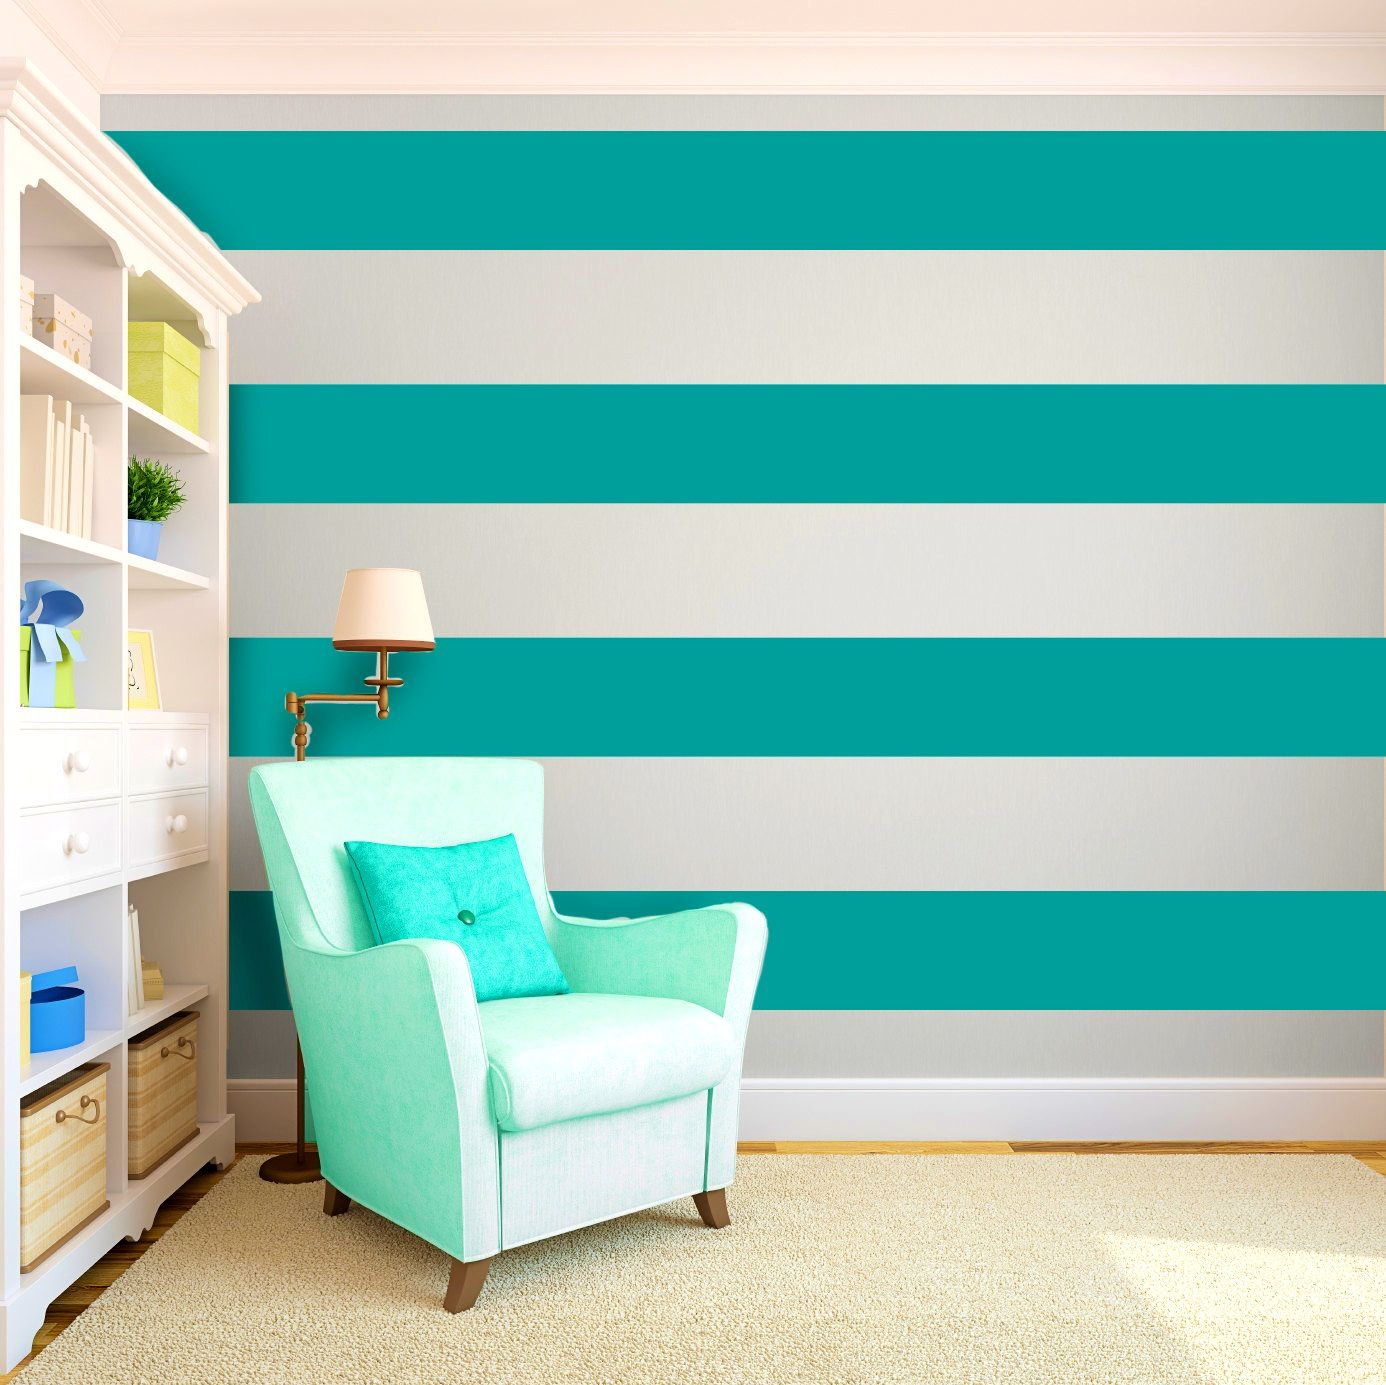 Bathroomappealing cool painting ideas that turn walls and